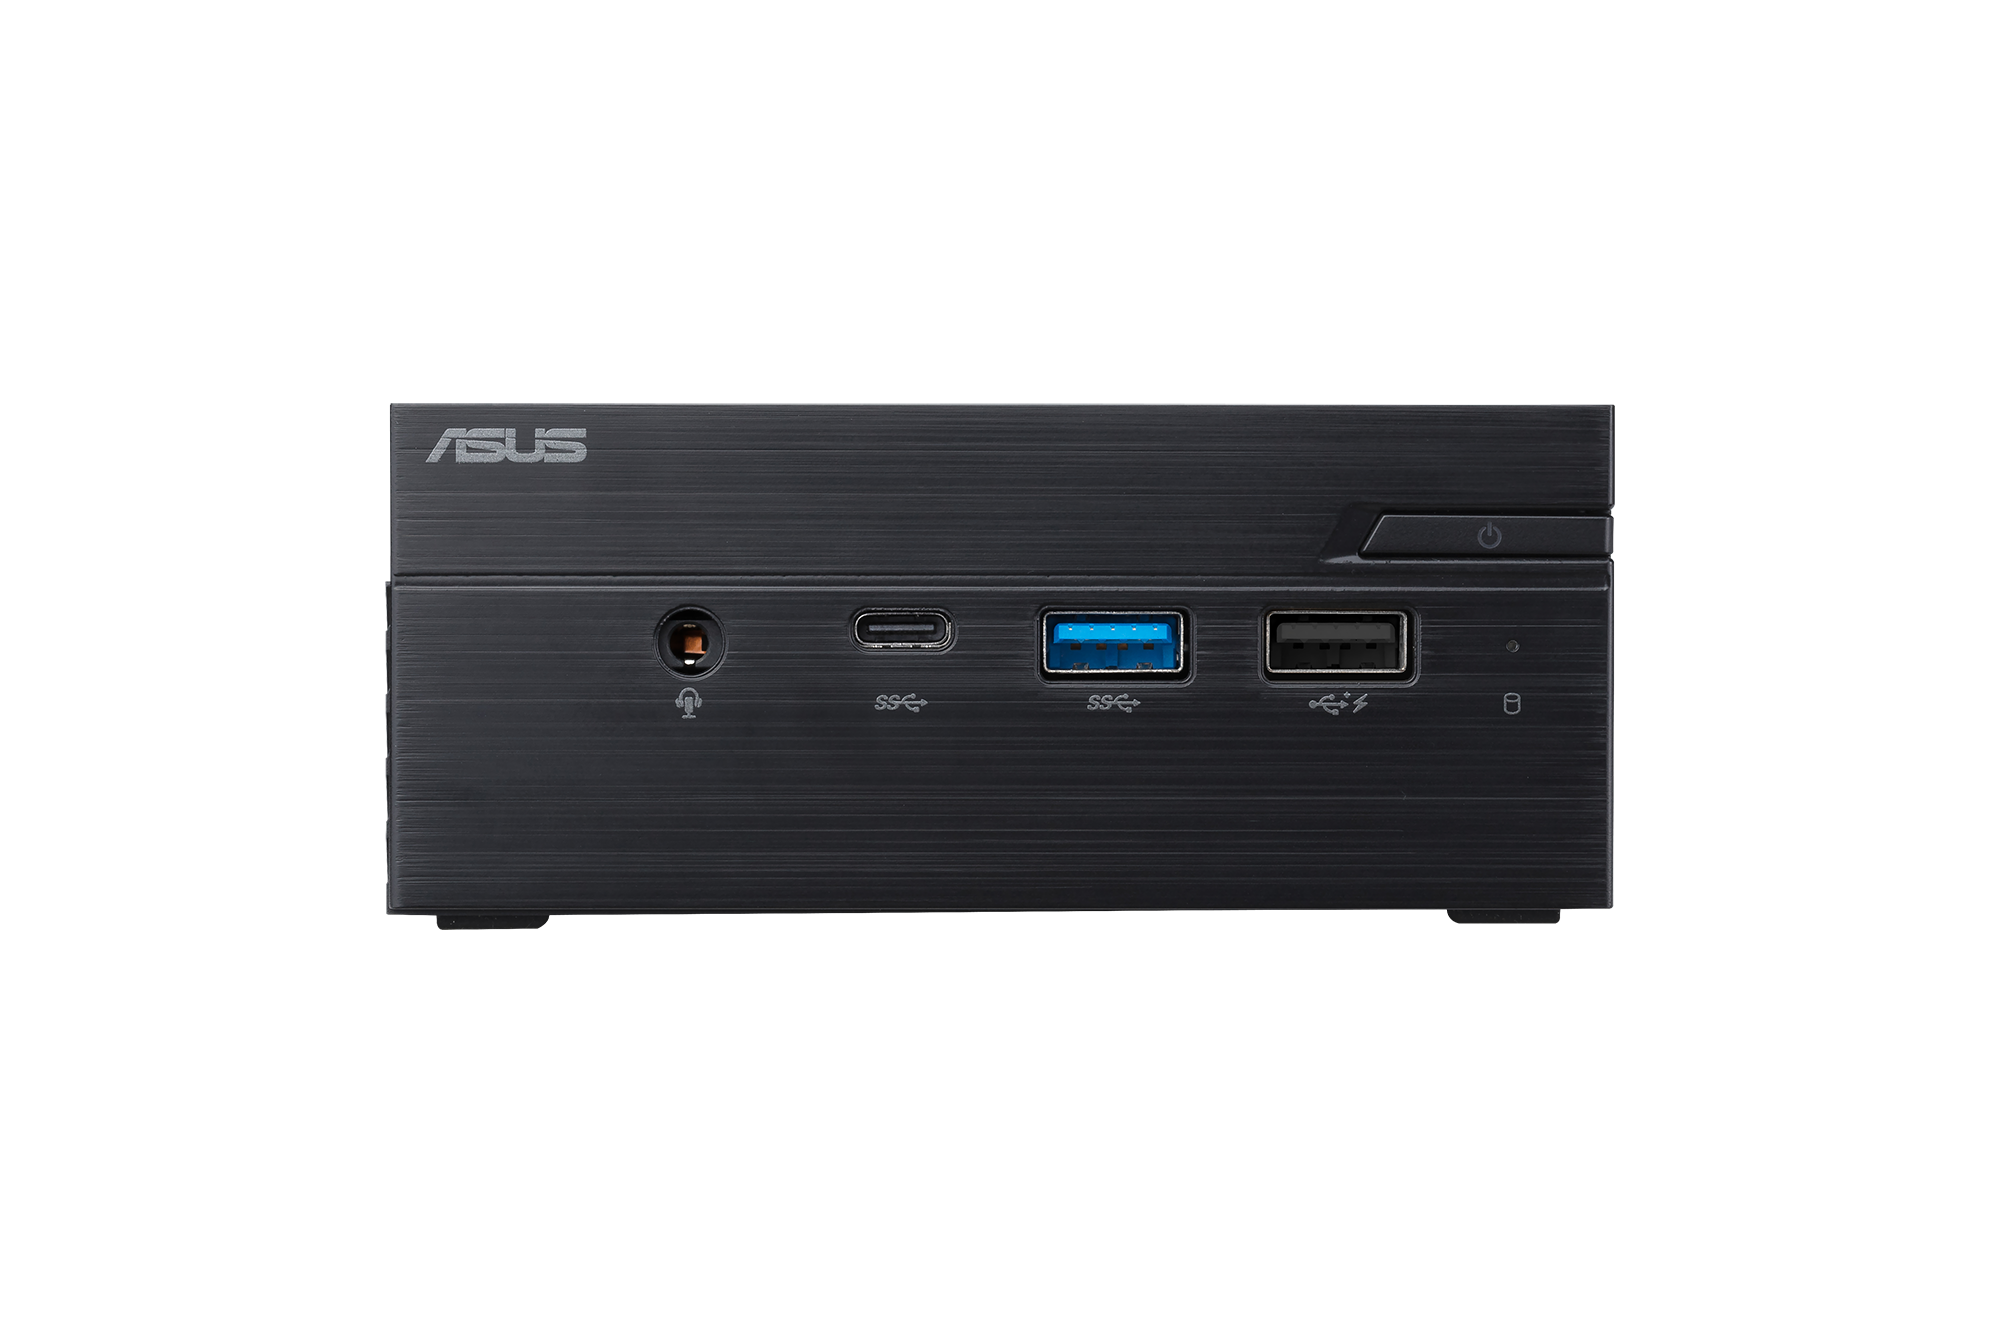 "Настолен компютър ASUS Mini PC PN40-BB009MC Celeron N4000 (fanless)/ 2x SO-DIMM DDR4/ 1*M.2 Slot+ 1* 2.5"" Slot/Wi-Fi AC/COM Port"